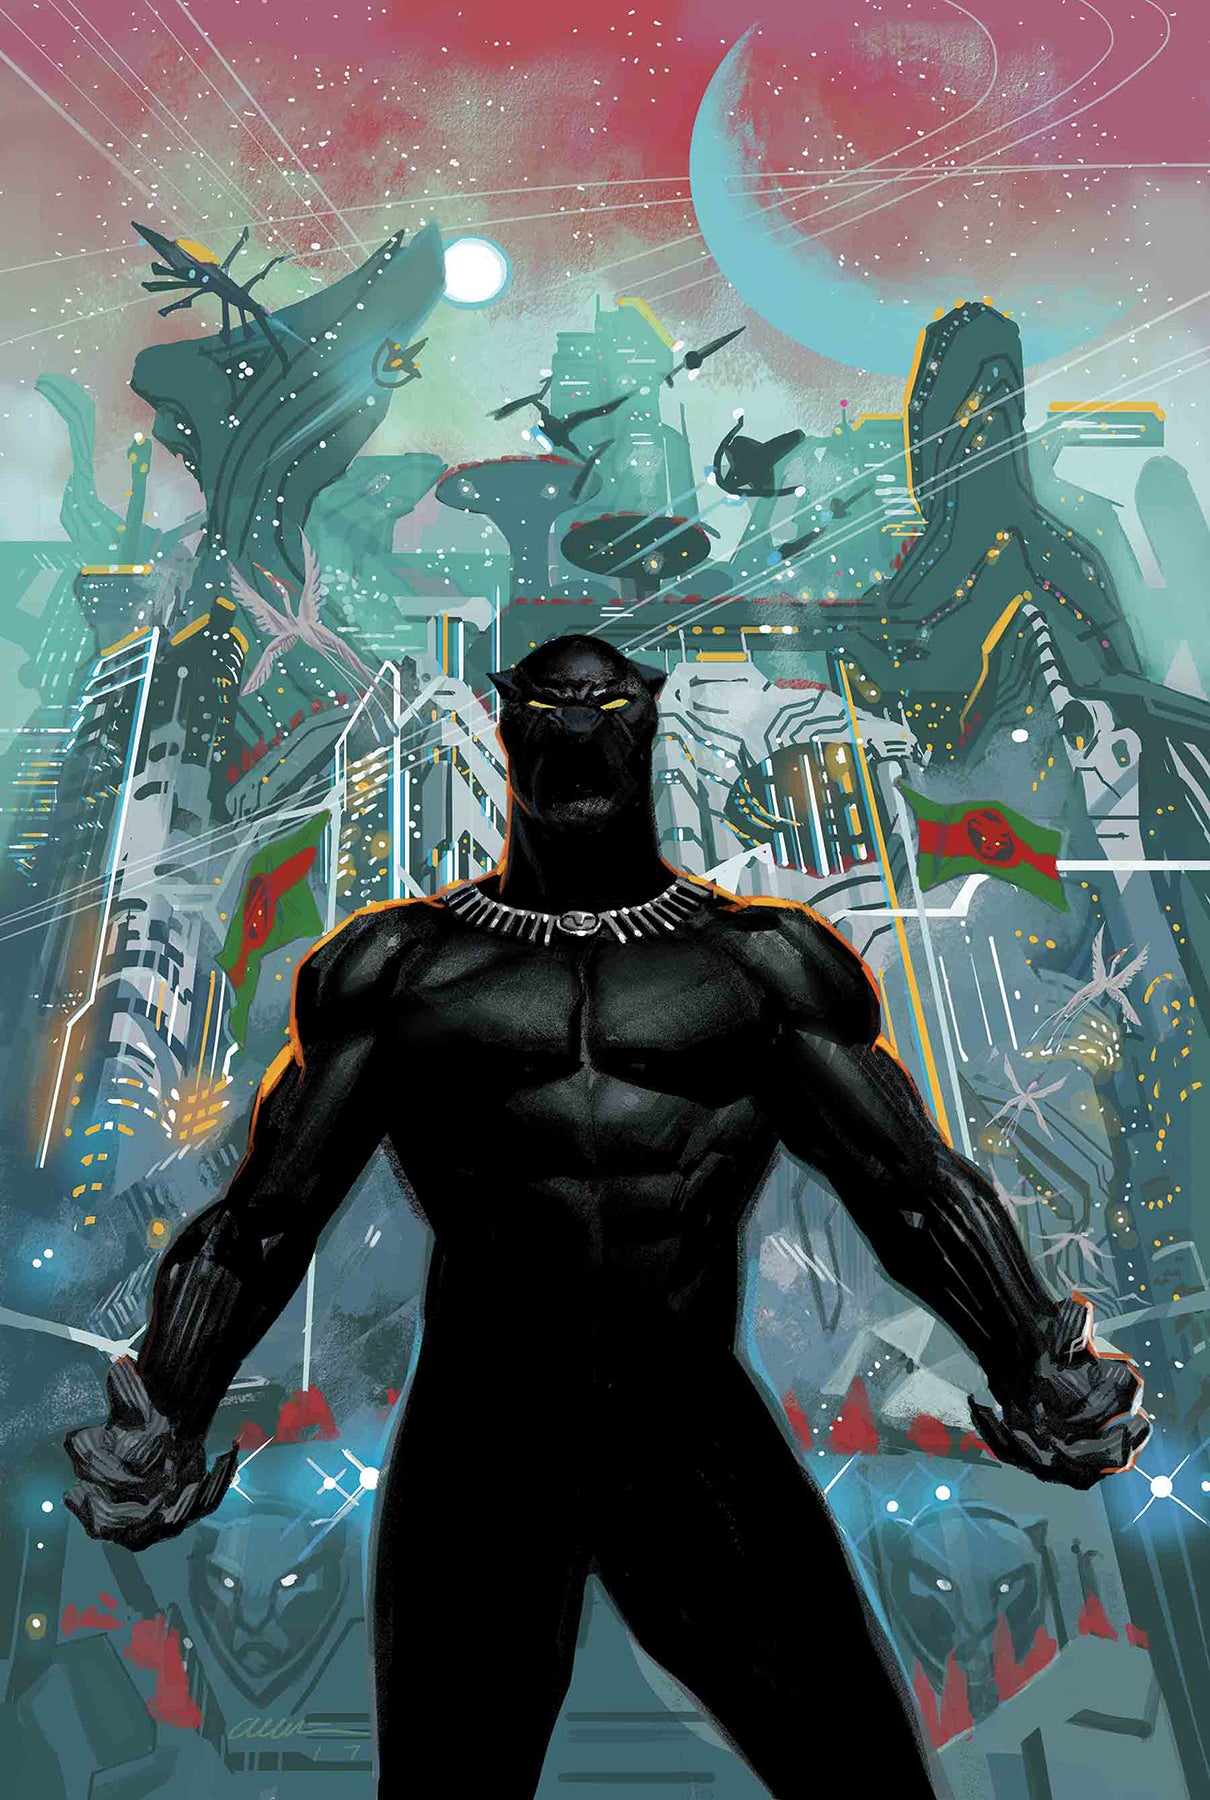 BLACK PANTHER #1 | Game Master's Emporium (The New GME)